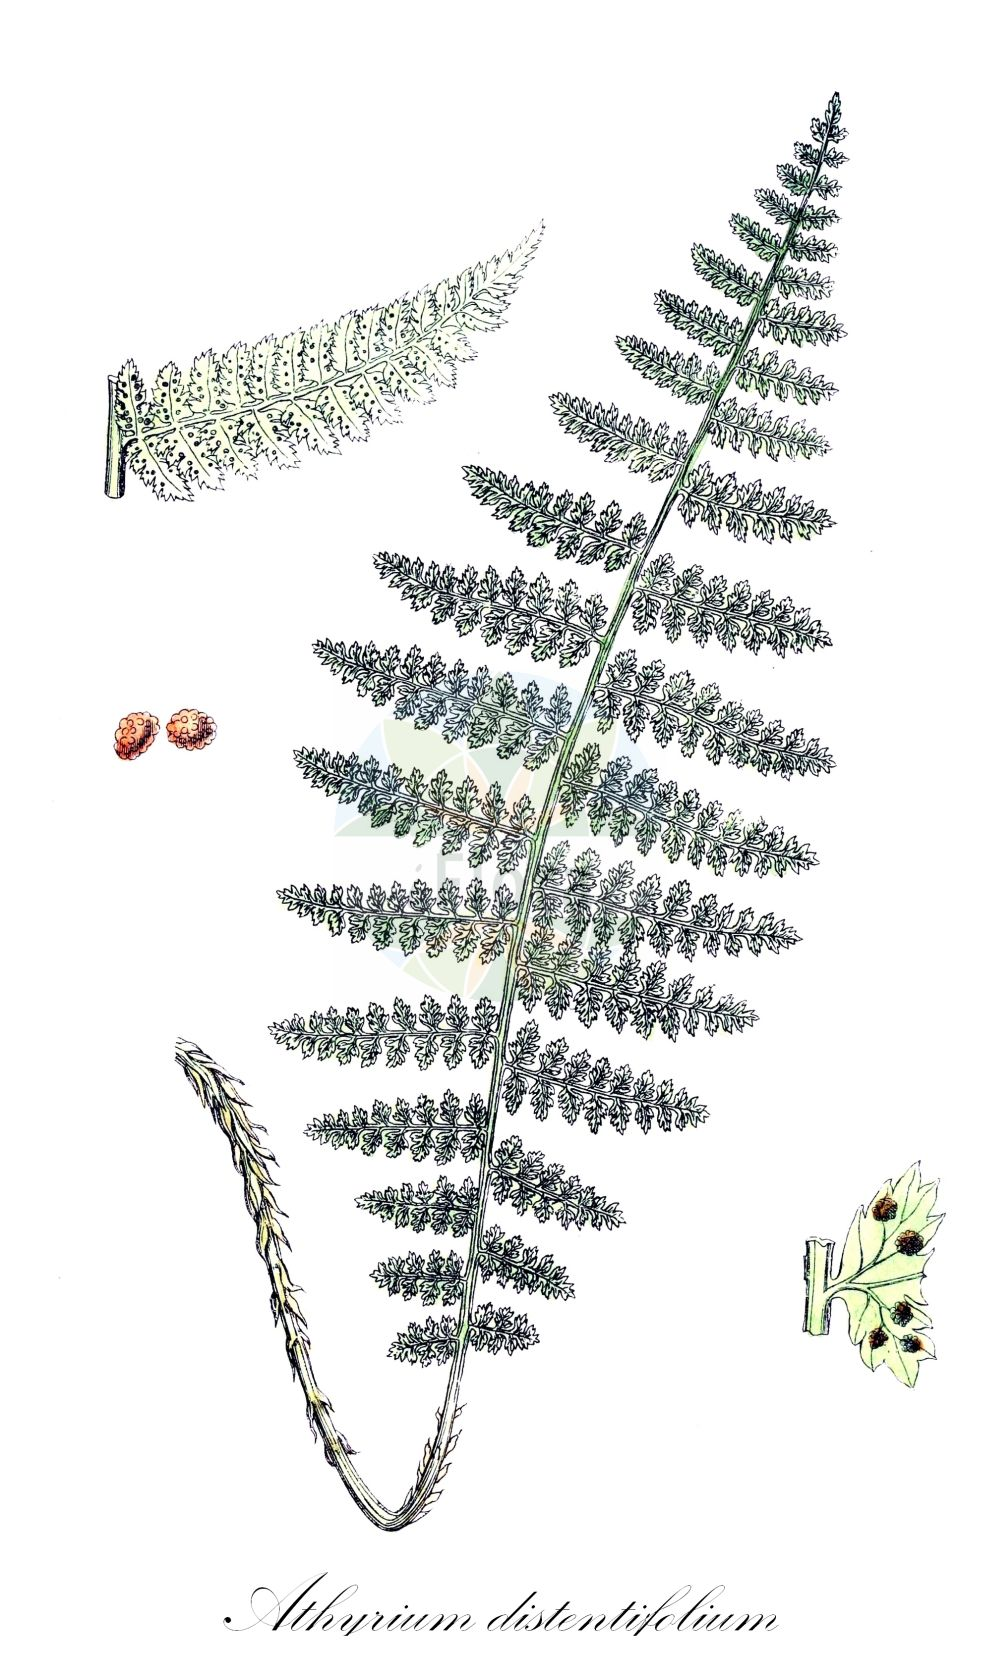 Historische Abbildung von Athyrium distentifolium (Gebirgs-Frauenfarn - Alpine Lady-fern). Das Bild zeigt Blatt, Bluete, Frucht und Same. ---- Historical Drawing of Athyrium distentifolium (Gebirgs-Frauenfarn - Alpine Lady-fern).The image is showing leaf, flower, fruit and seed. (Athyrium distentifolium,Gebirgs-Frauenfarn,Alpine Lady-fern,Aspidium alpestre,Athyrium flexile,Pseudathyrium flexile,Athyrium alpestre,Athyrium,Frauenfarn,Lady-fern,Athyriaceae,Lady-Fern family,Frauenfarngewaechse,Blatt,Bluete,Frucht,Same,leaf,flower,fruit,seed,Sowerby (1790-1813))